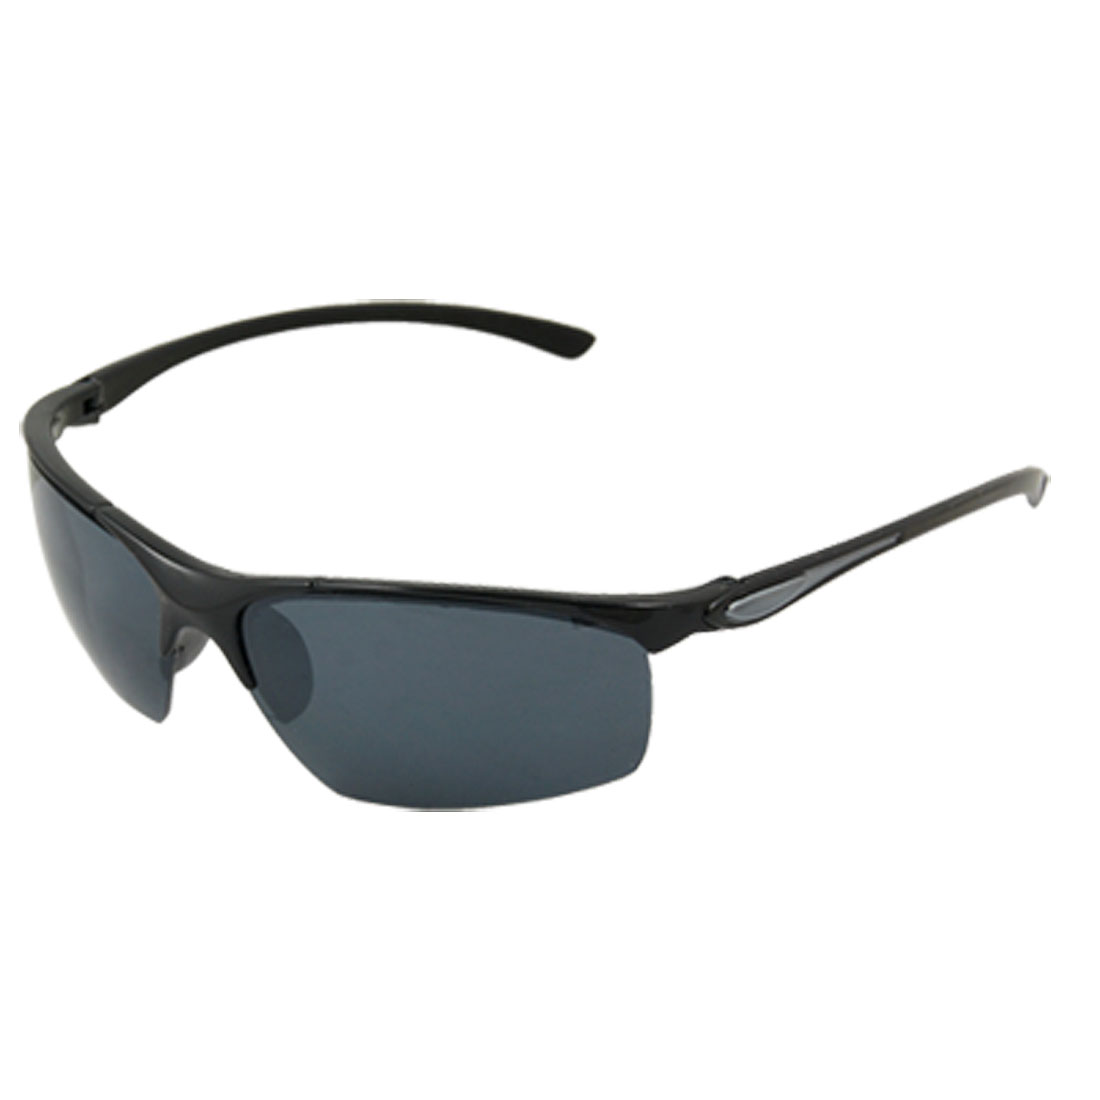 Unisex Black Half Rim Eyewear Rectangle Lens Sunglasses